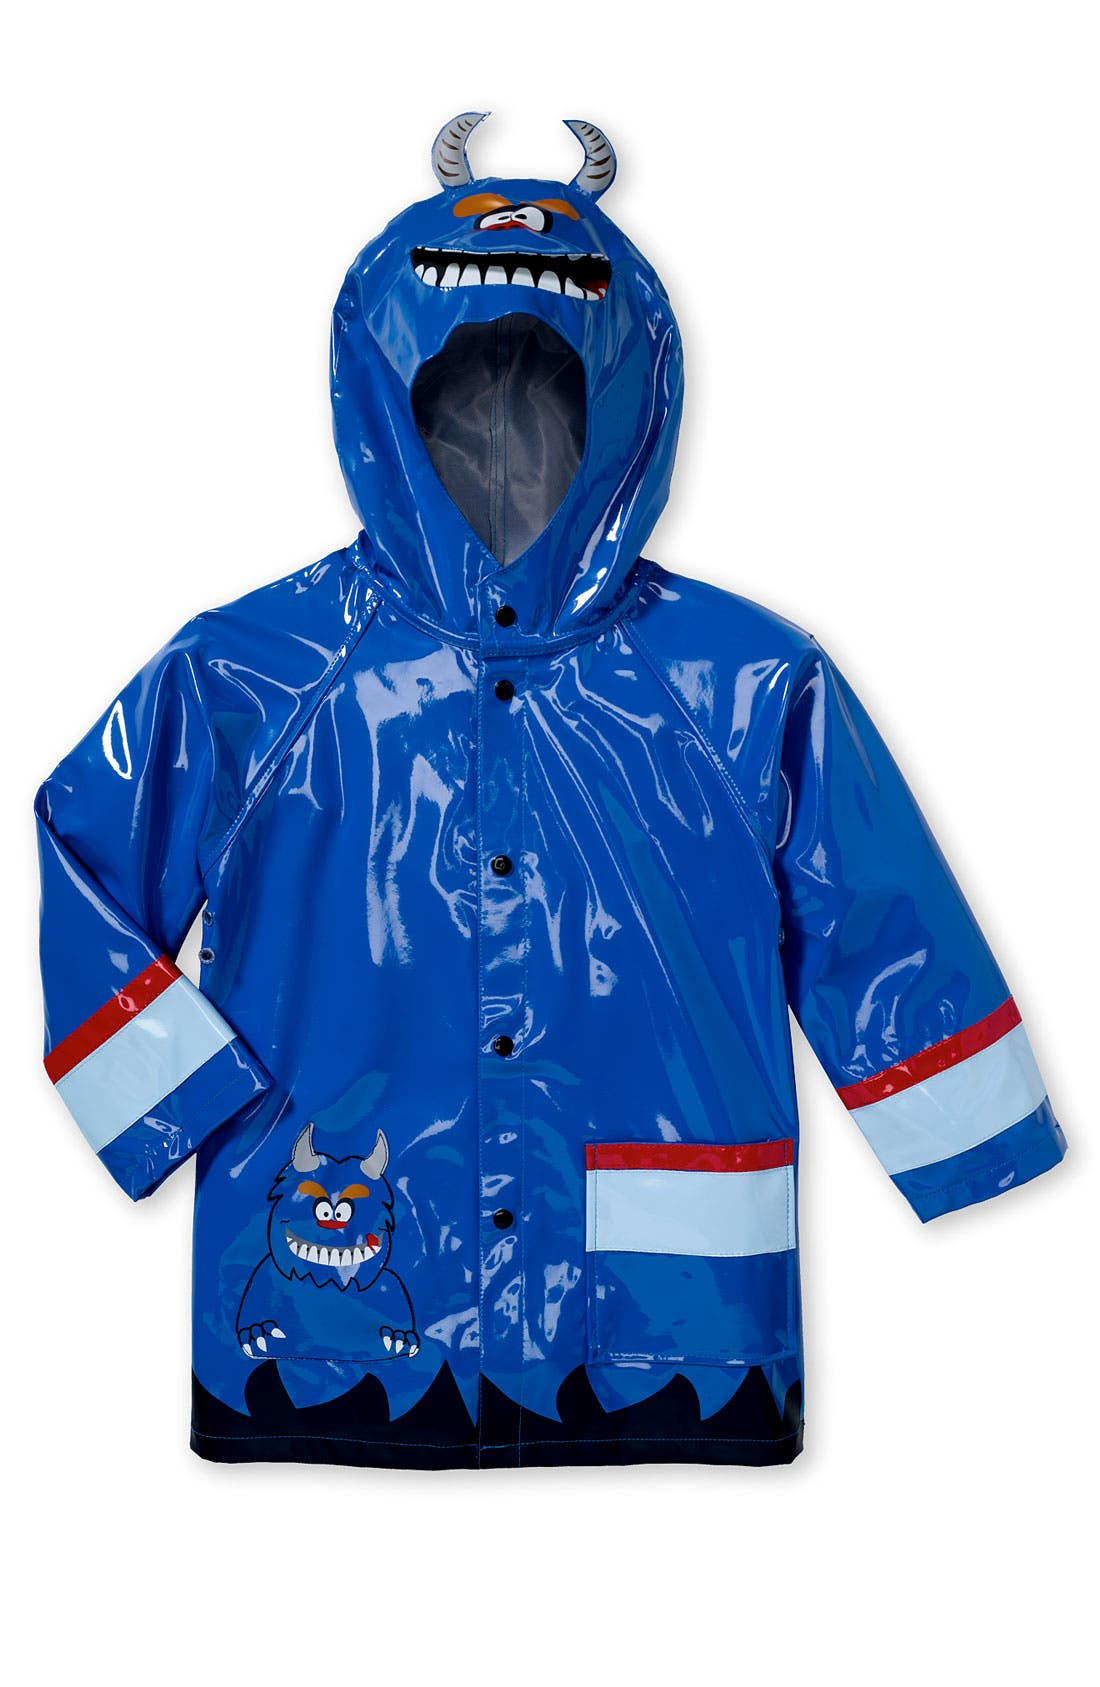 Main Image - Western Chief 'Monster' Raincoat (Toddler & Little Kid)